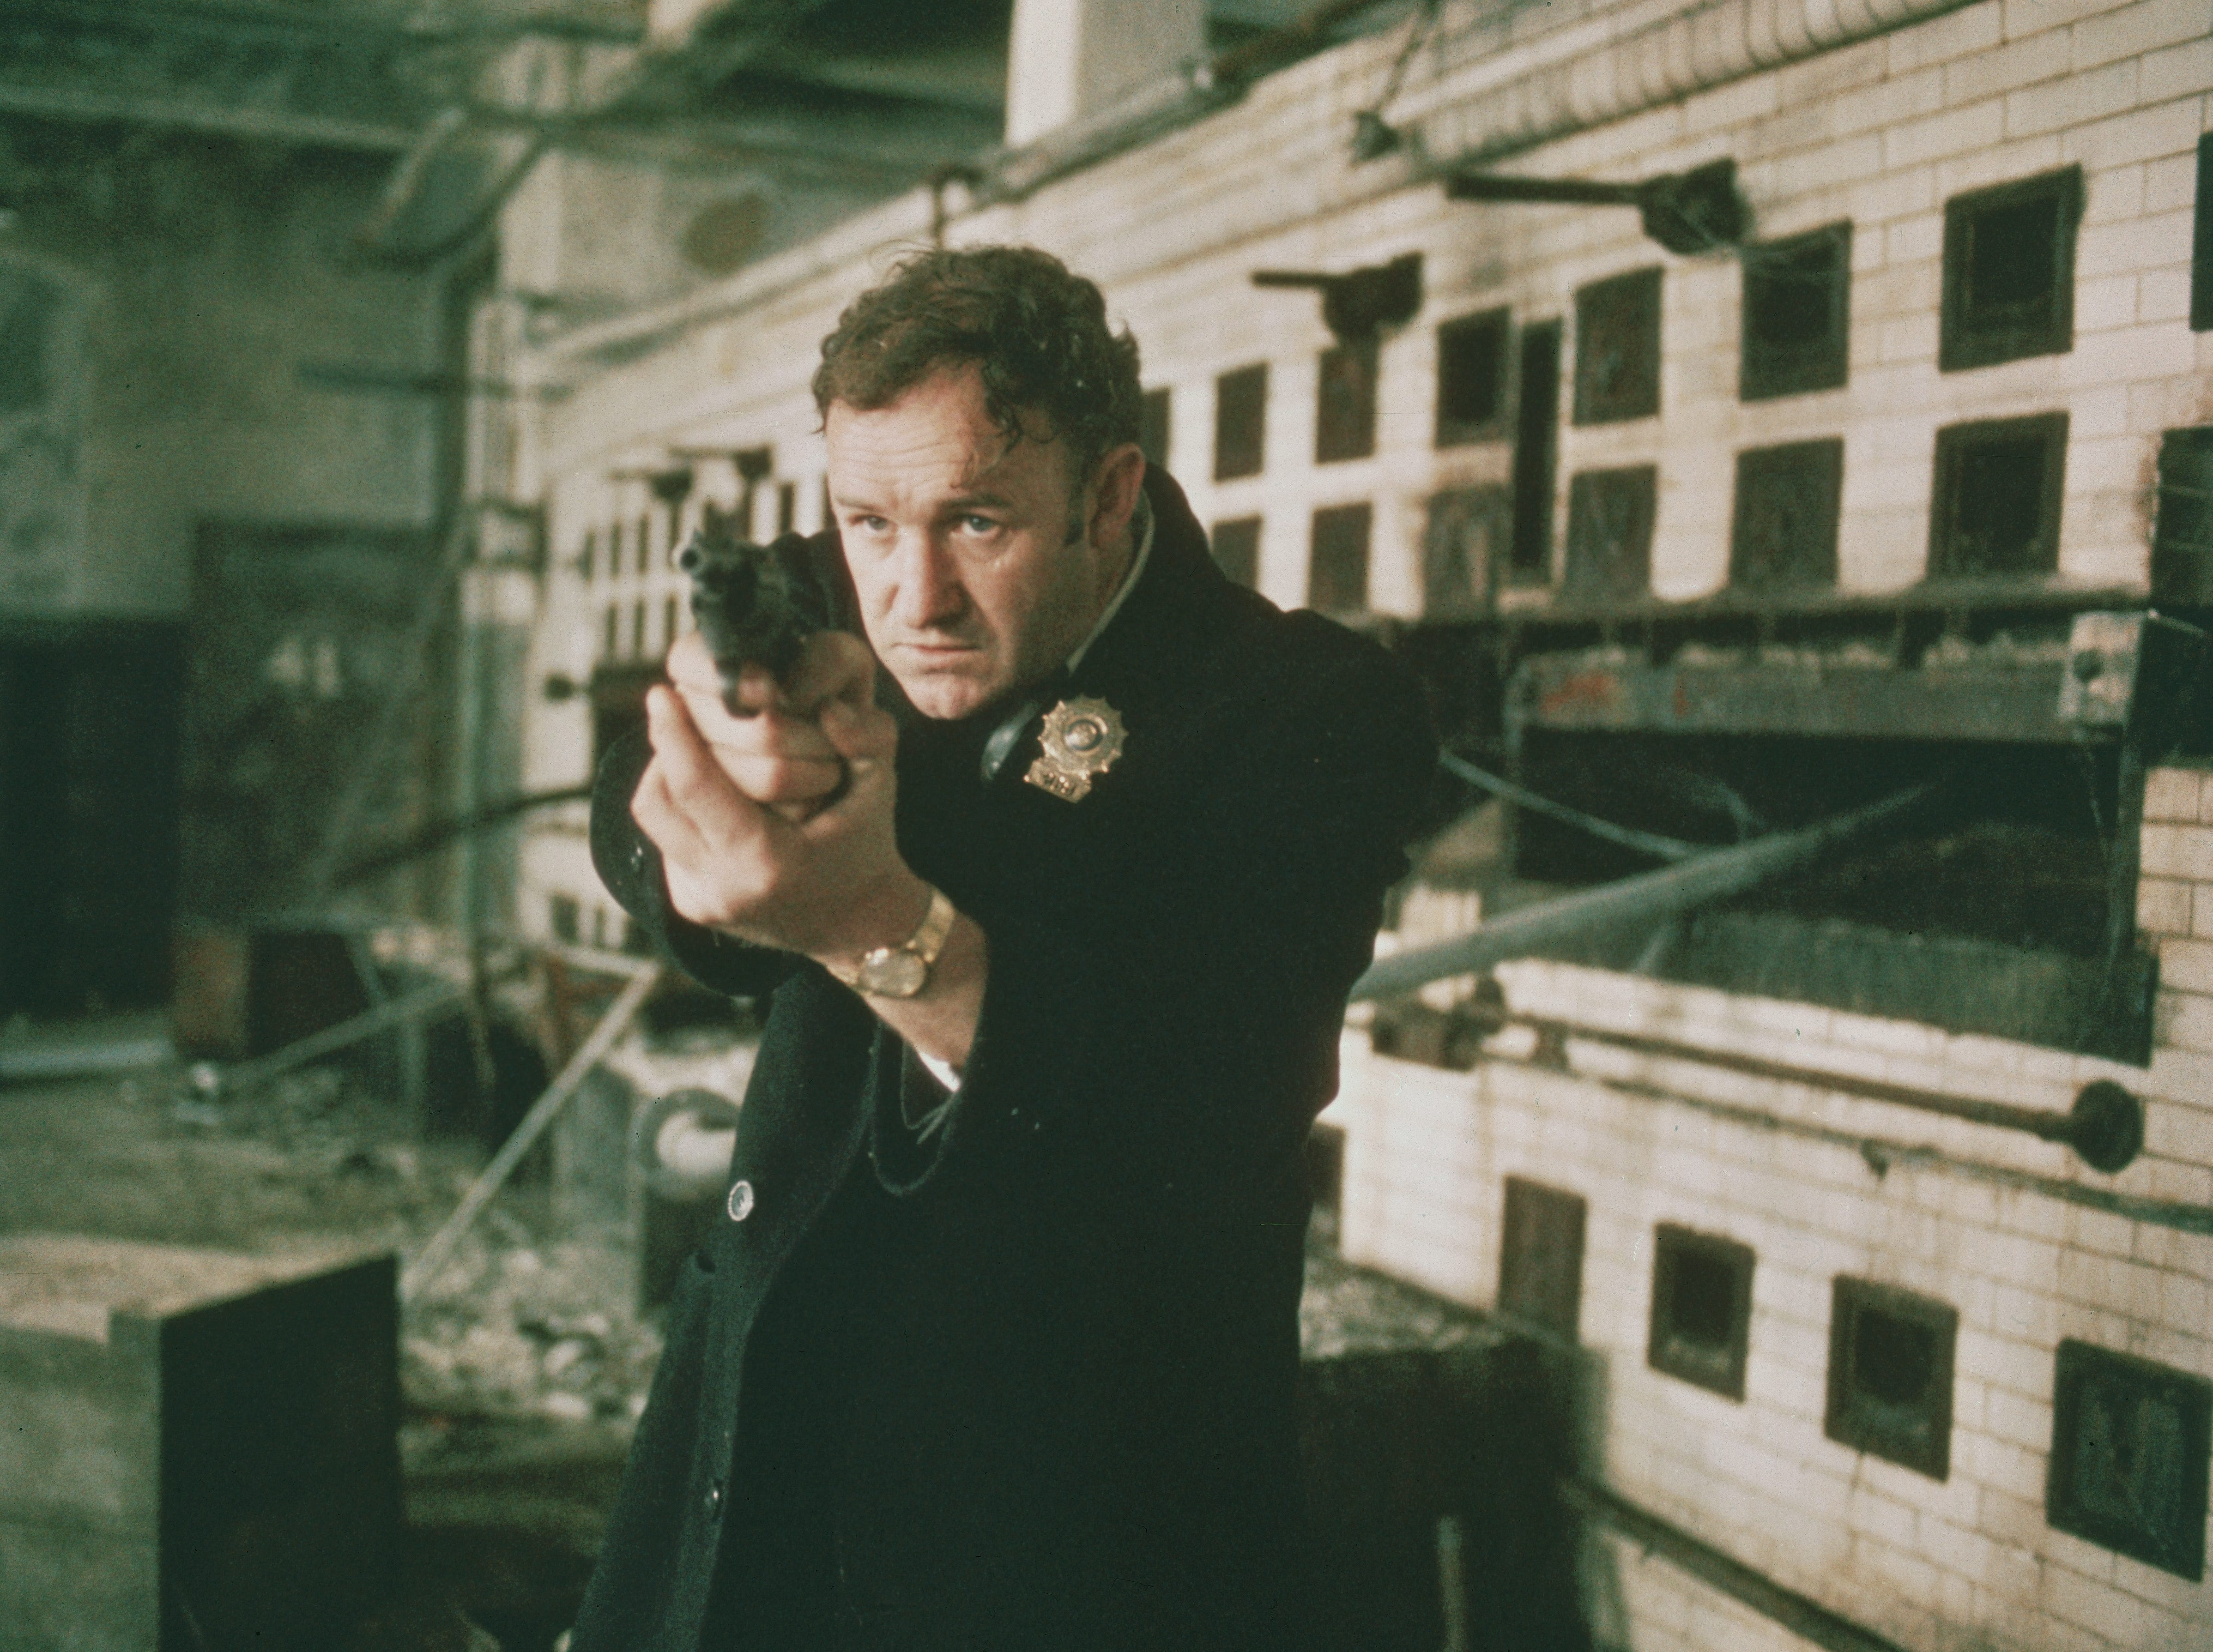 ONE TIME USE 2/21/2019 1971, Gene Hackman as Detective Jimmy 'Popeye' Doyle points his handgun in a still from the film 'The French Connection' directed by William Friedkin. (Photo by 20th Century Fox/Getty Images)